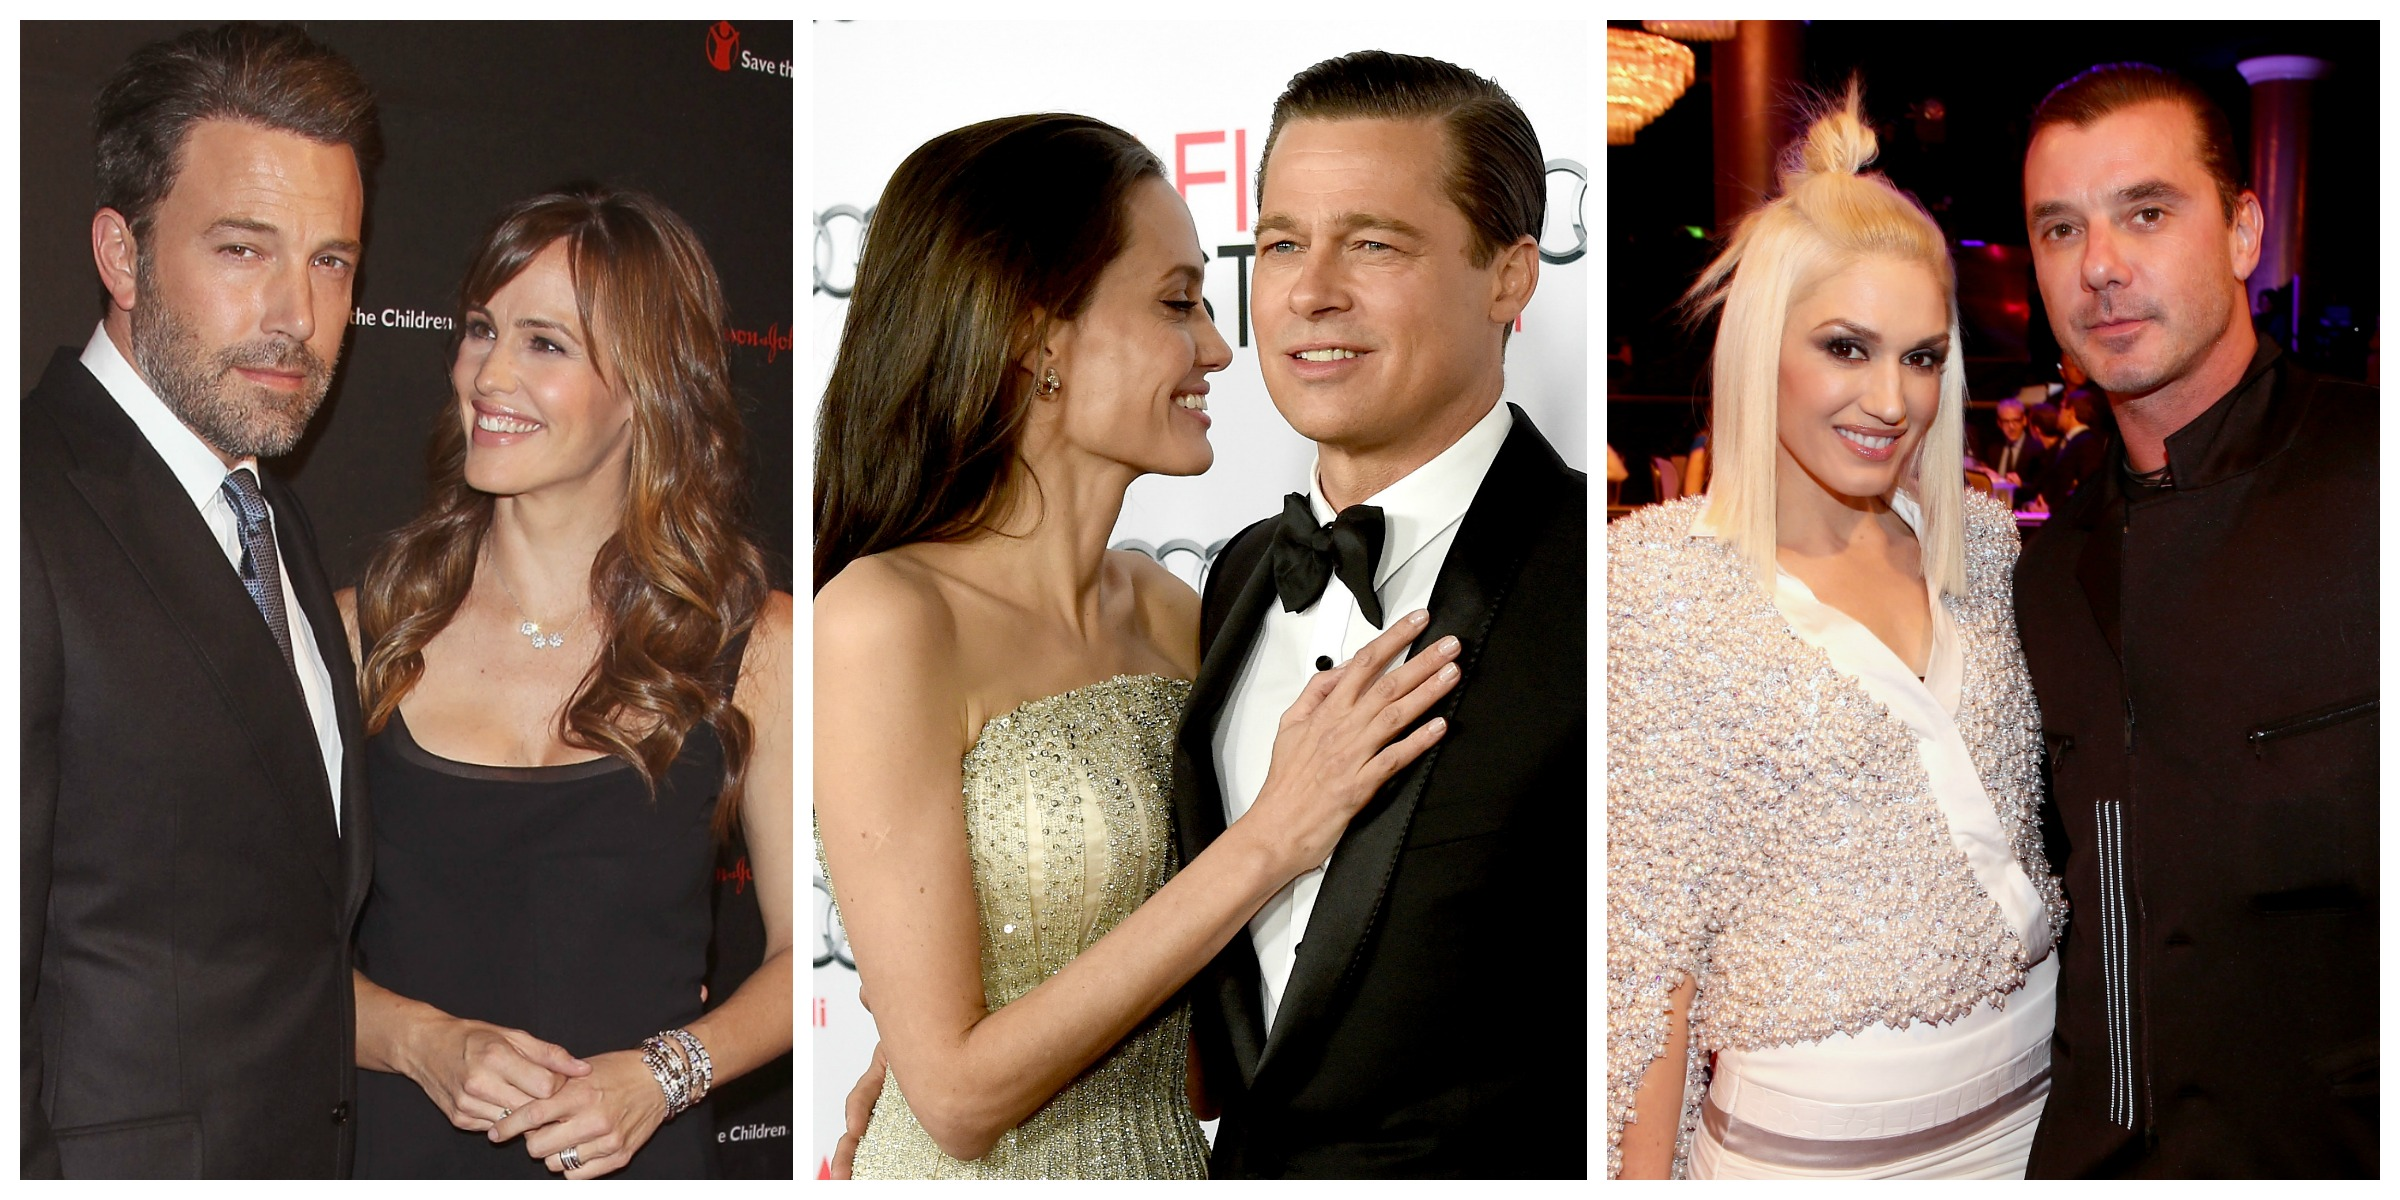 29 Celebrity Divorces: Famous Breakups - Vogue